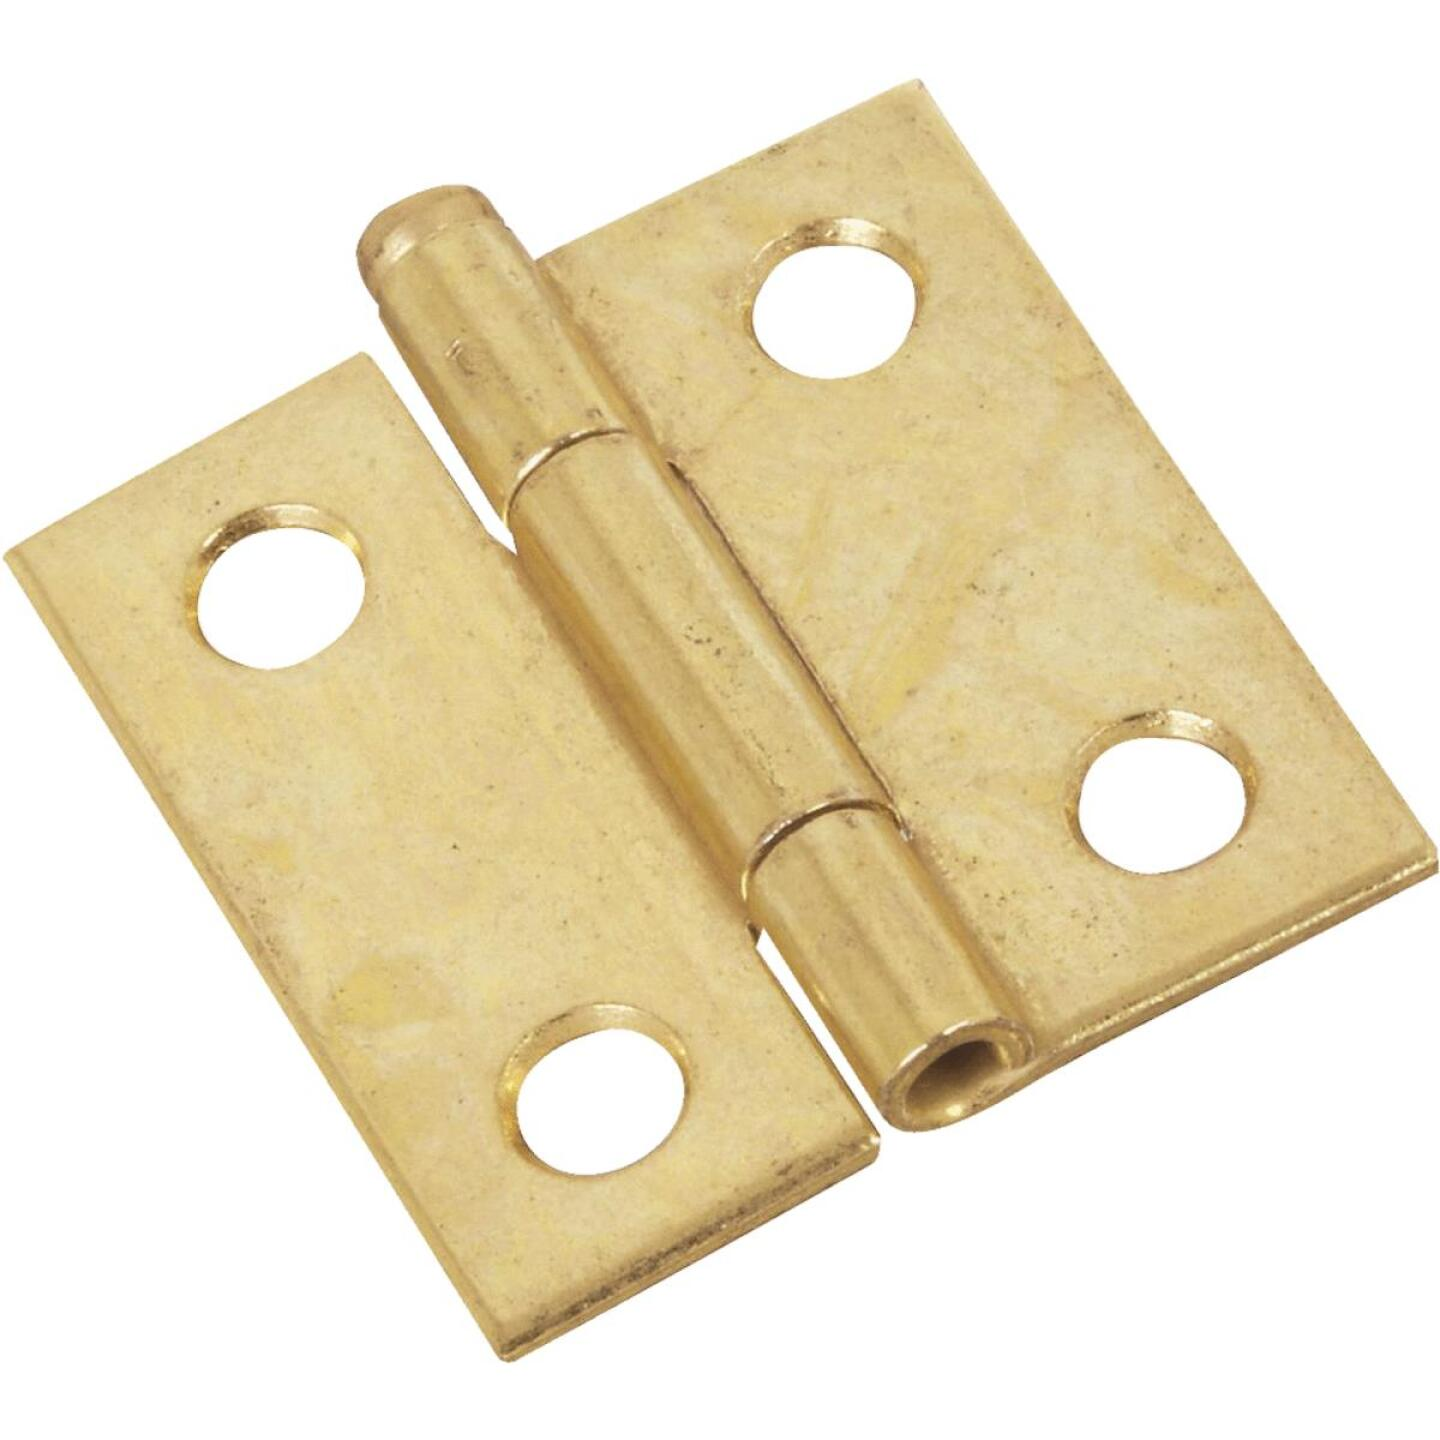 National 1-1/2 In. Brass Loose-Pin Narrow Hinge (2-Pack) Image 1